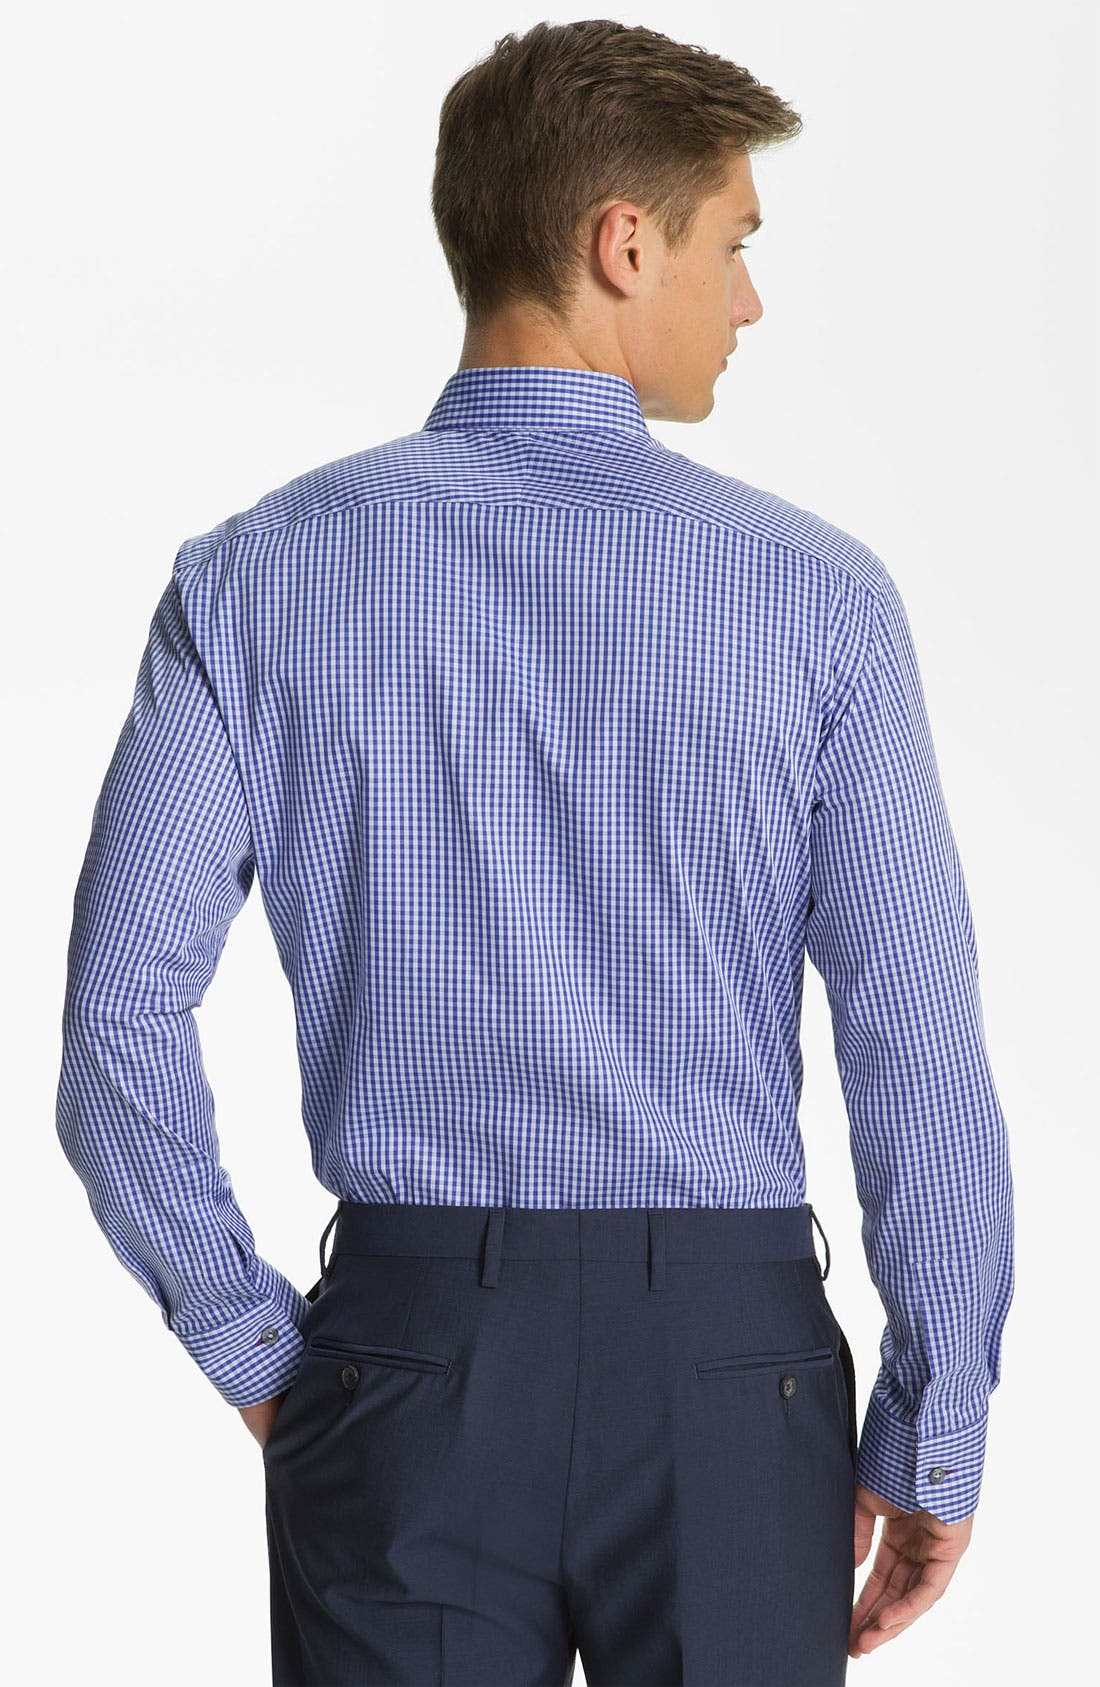 Gingham Check Dress Shirt,                             Alternate thumbnail 2, color,                             414